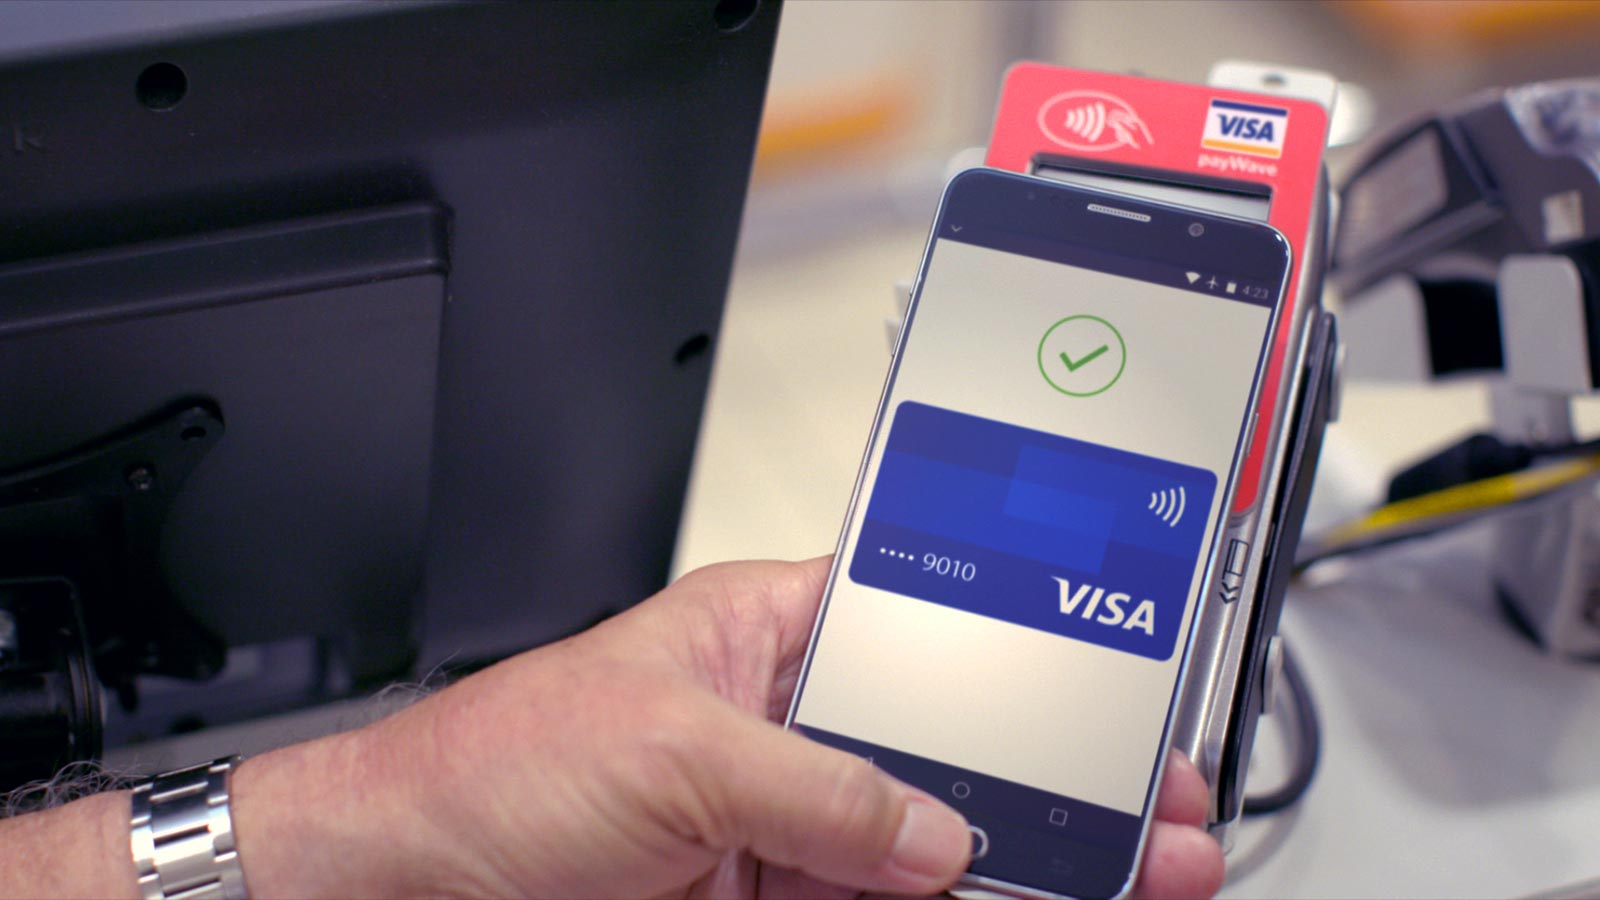 Payment being made with Visa payWave